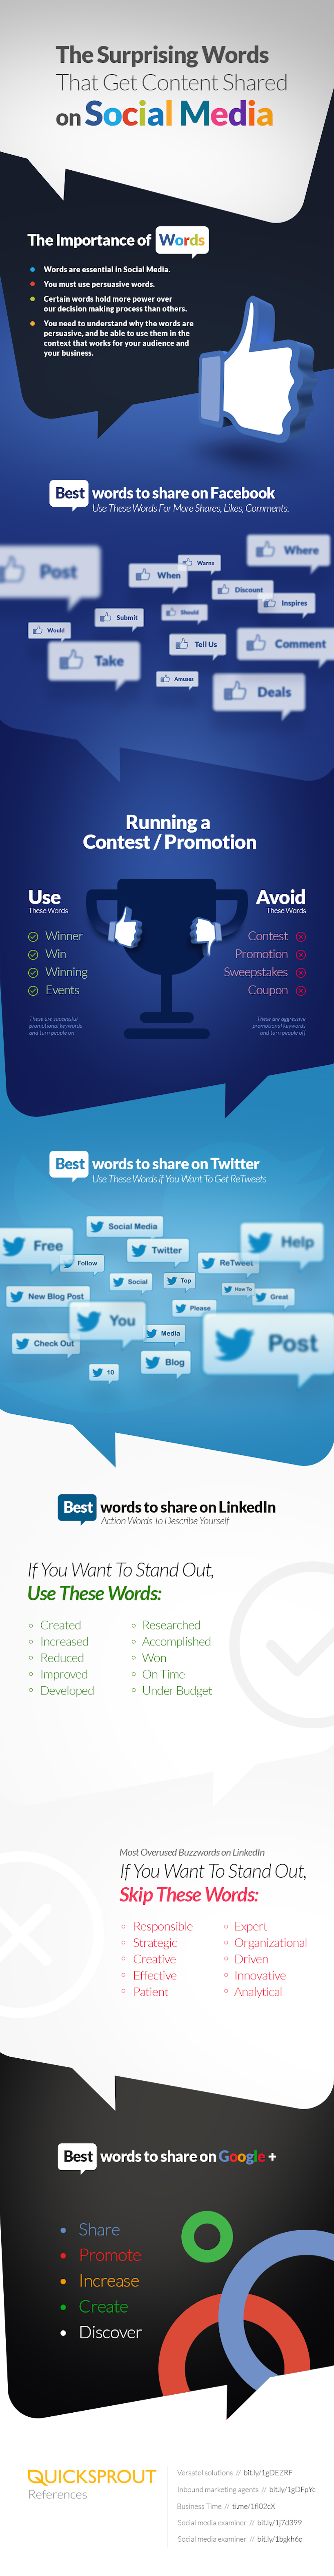 Words That Get Content Shared on Social Media